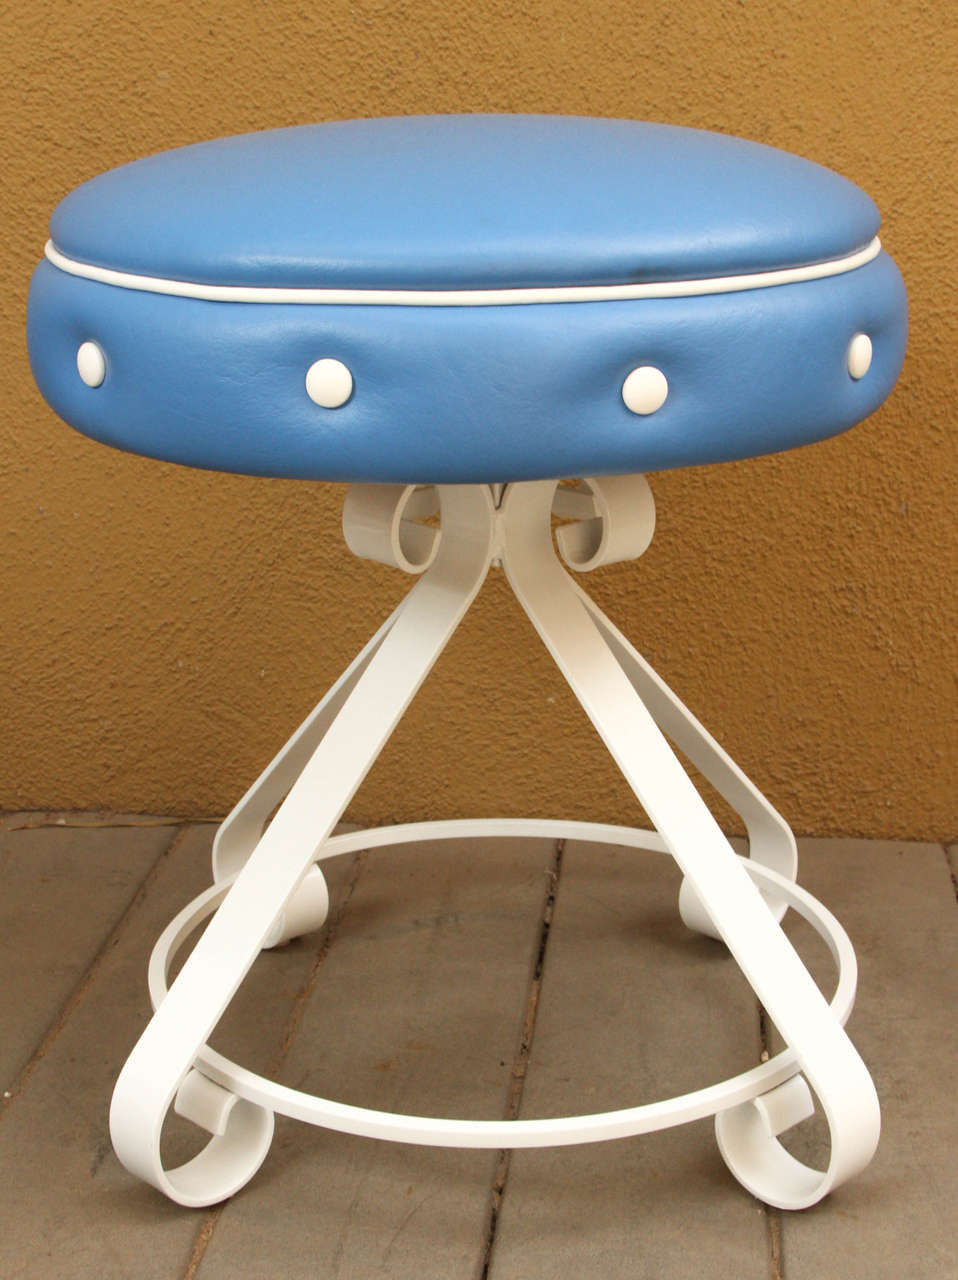 Three Stools With White Metal Bases And Blue Leather